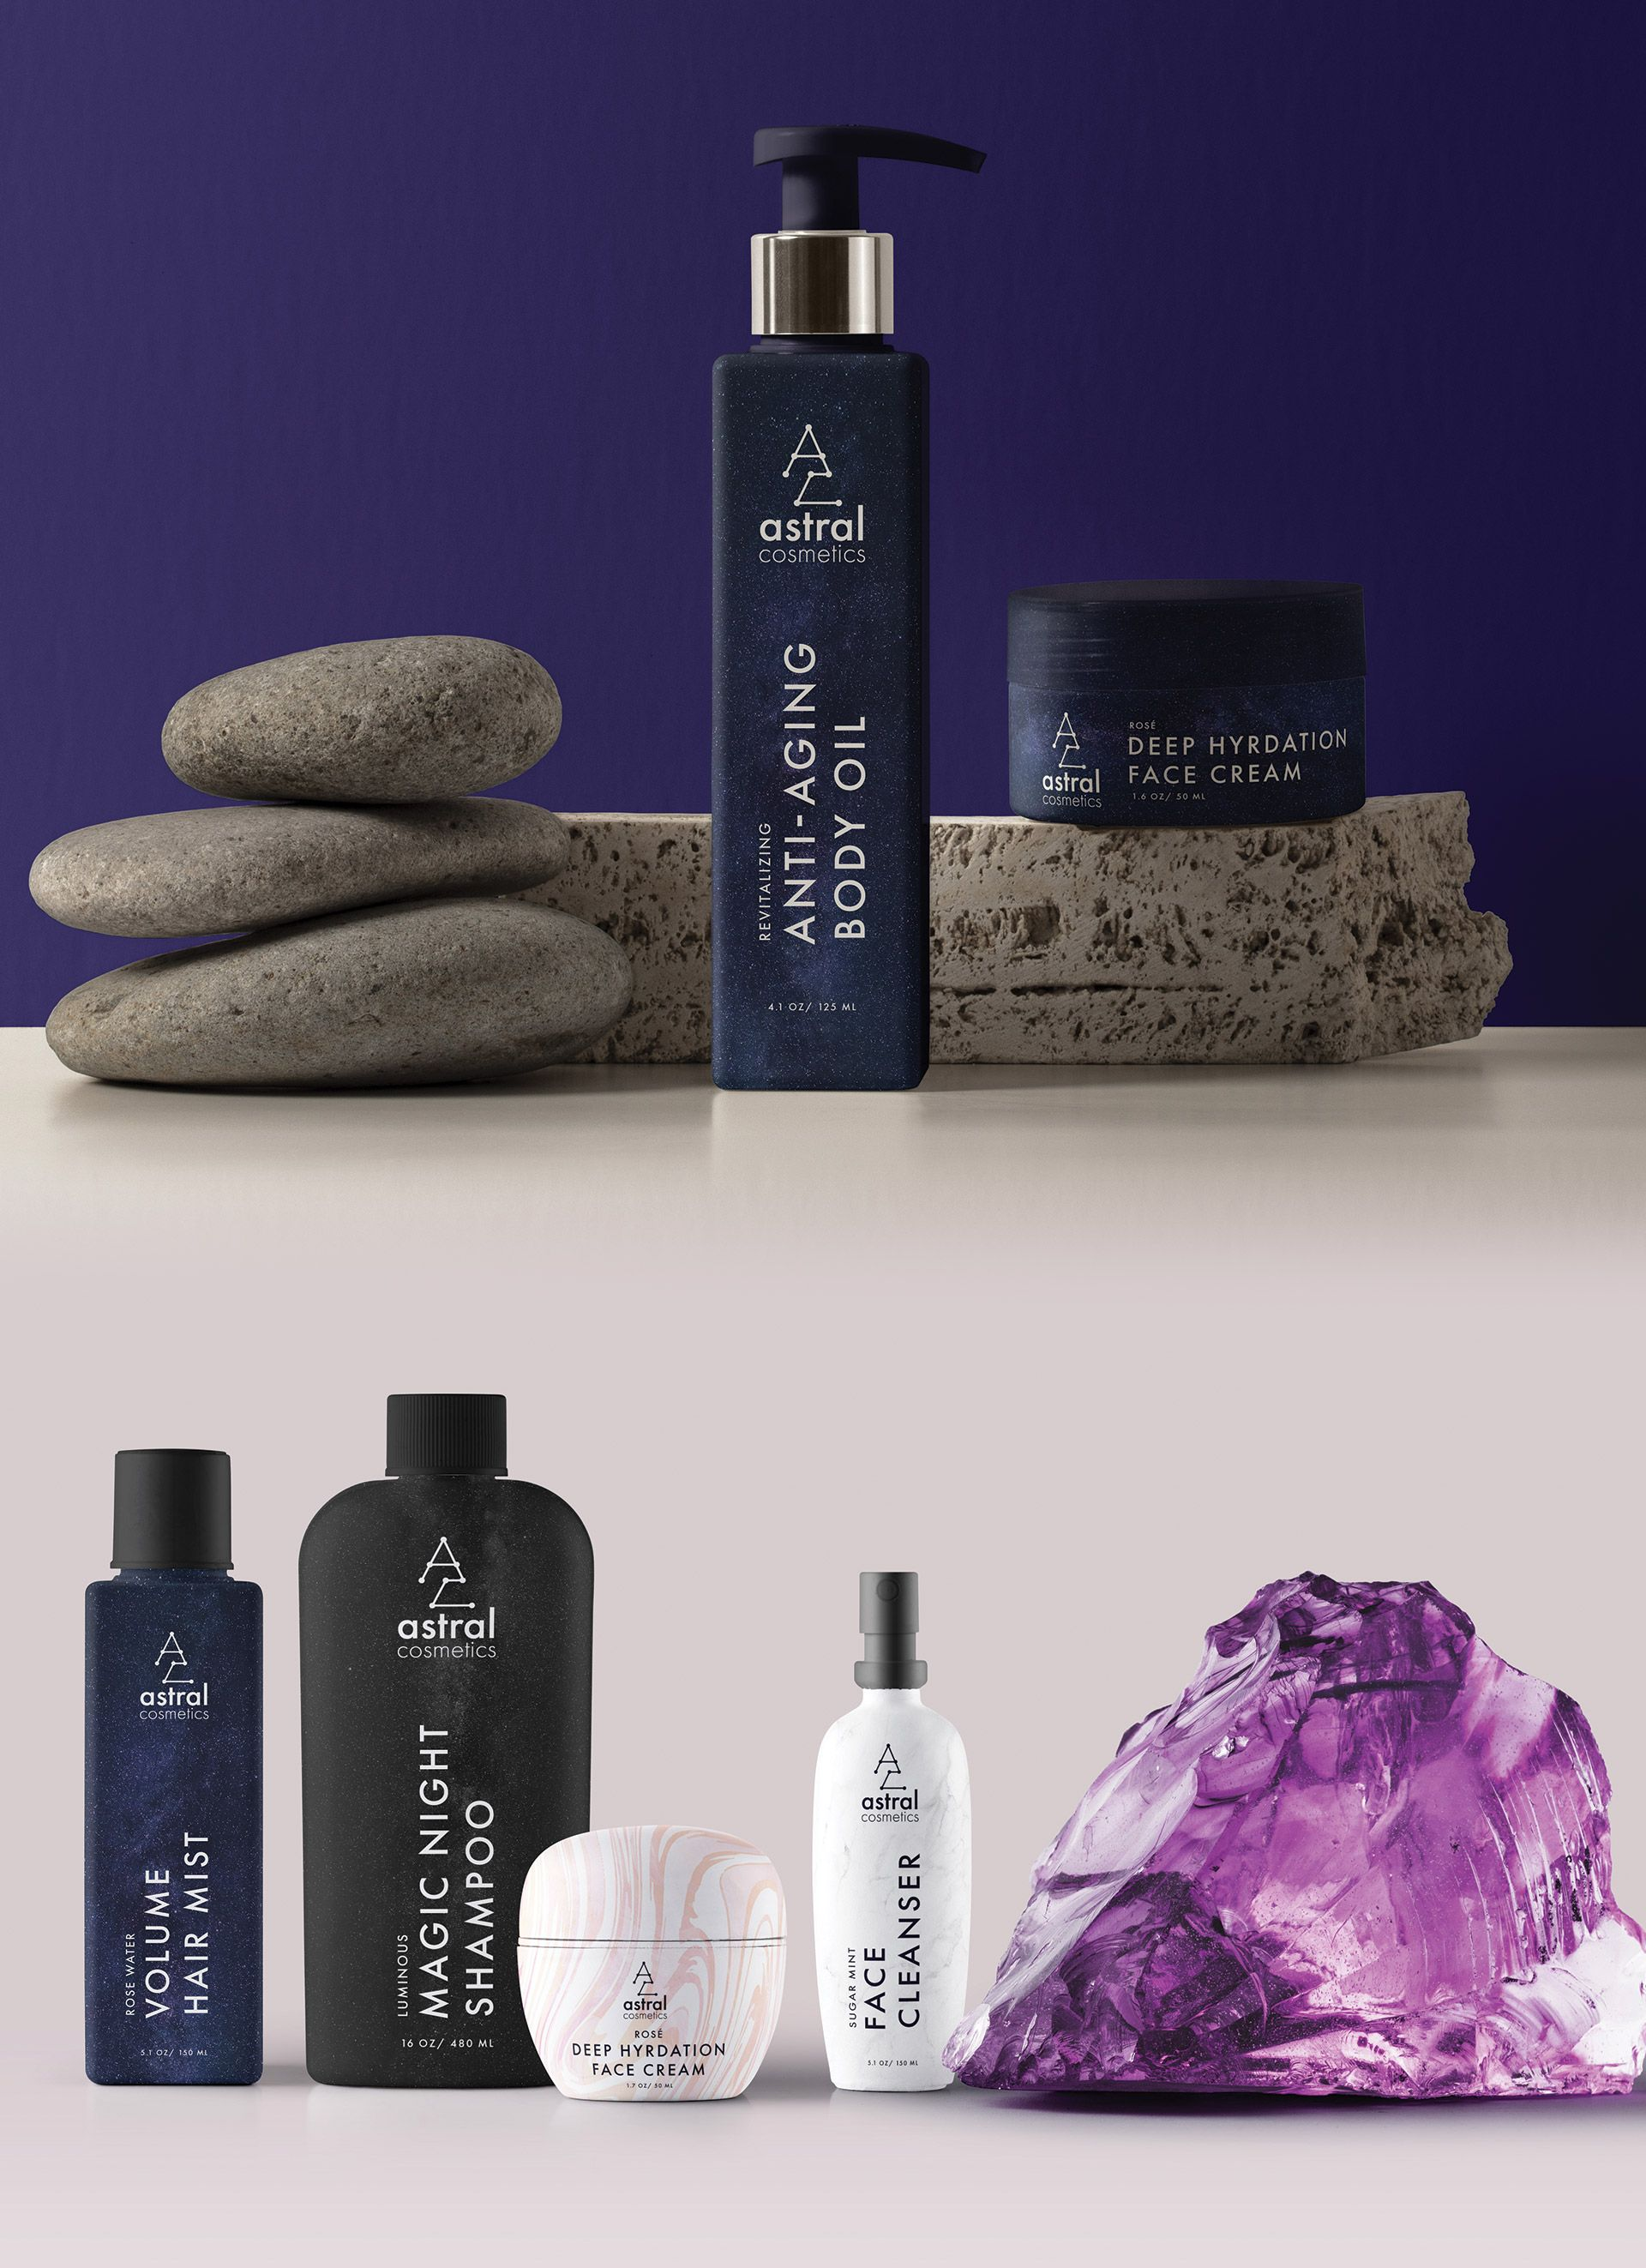 Packaging Designs For Astral Cosmetics - Obie Rifai Designs